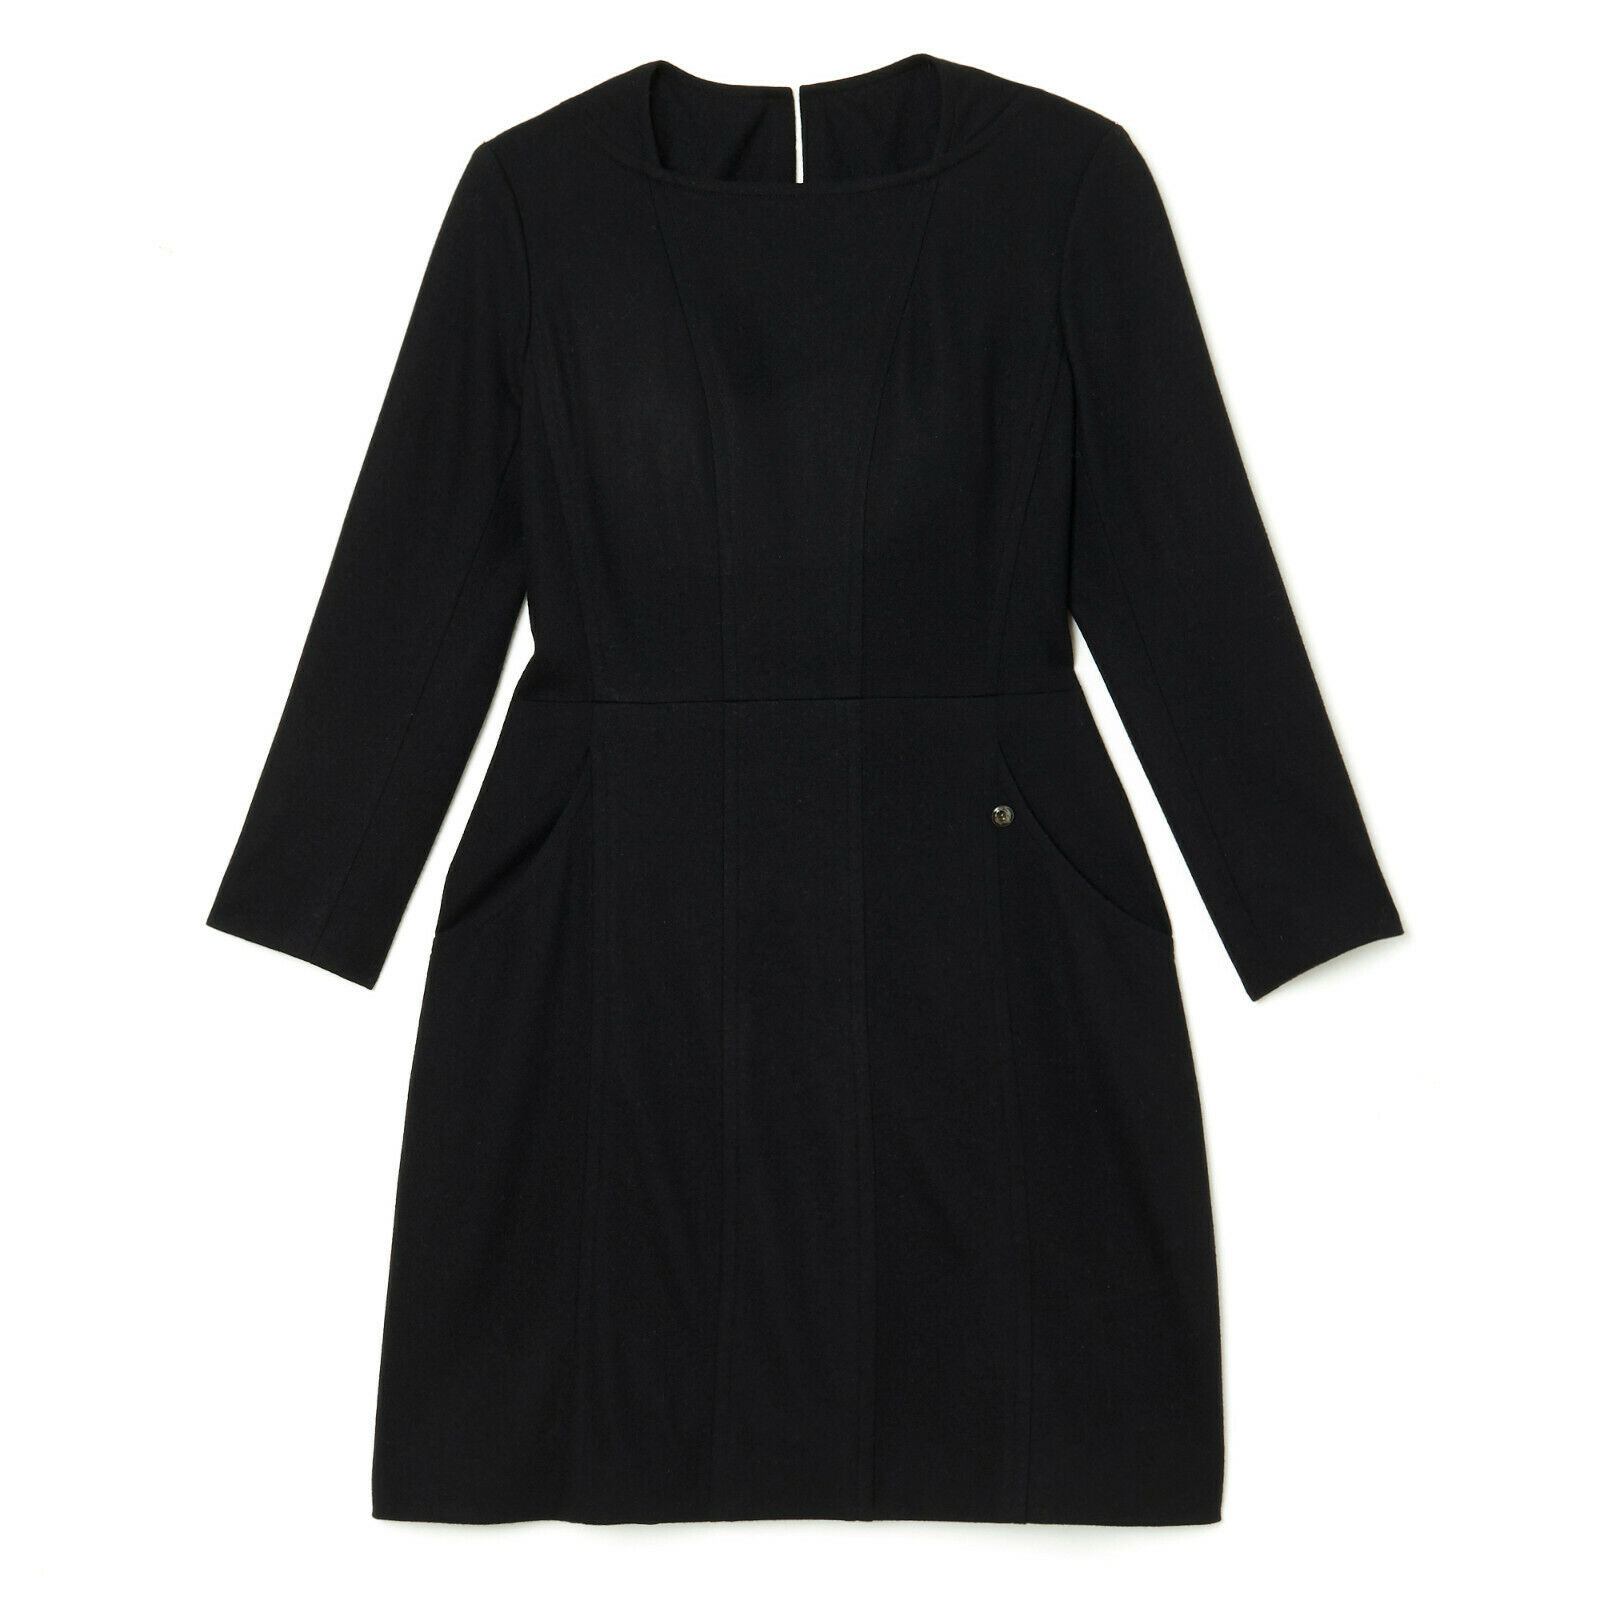 Chanel robe dress fr42 minimal black